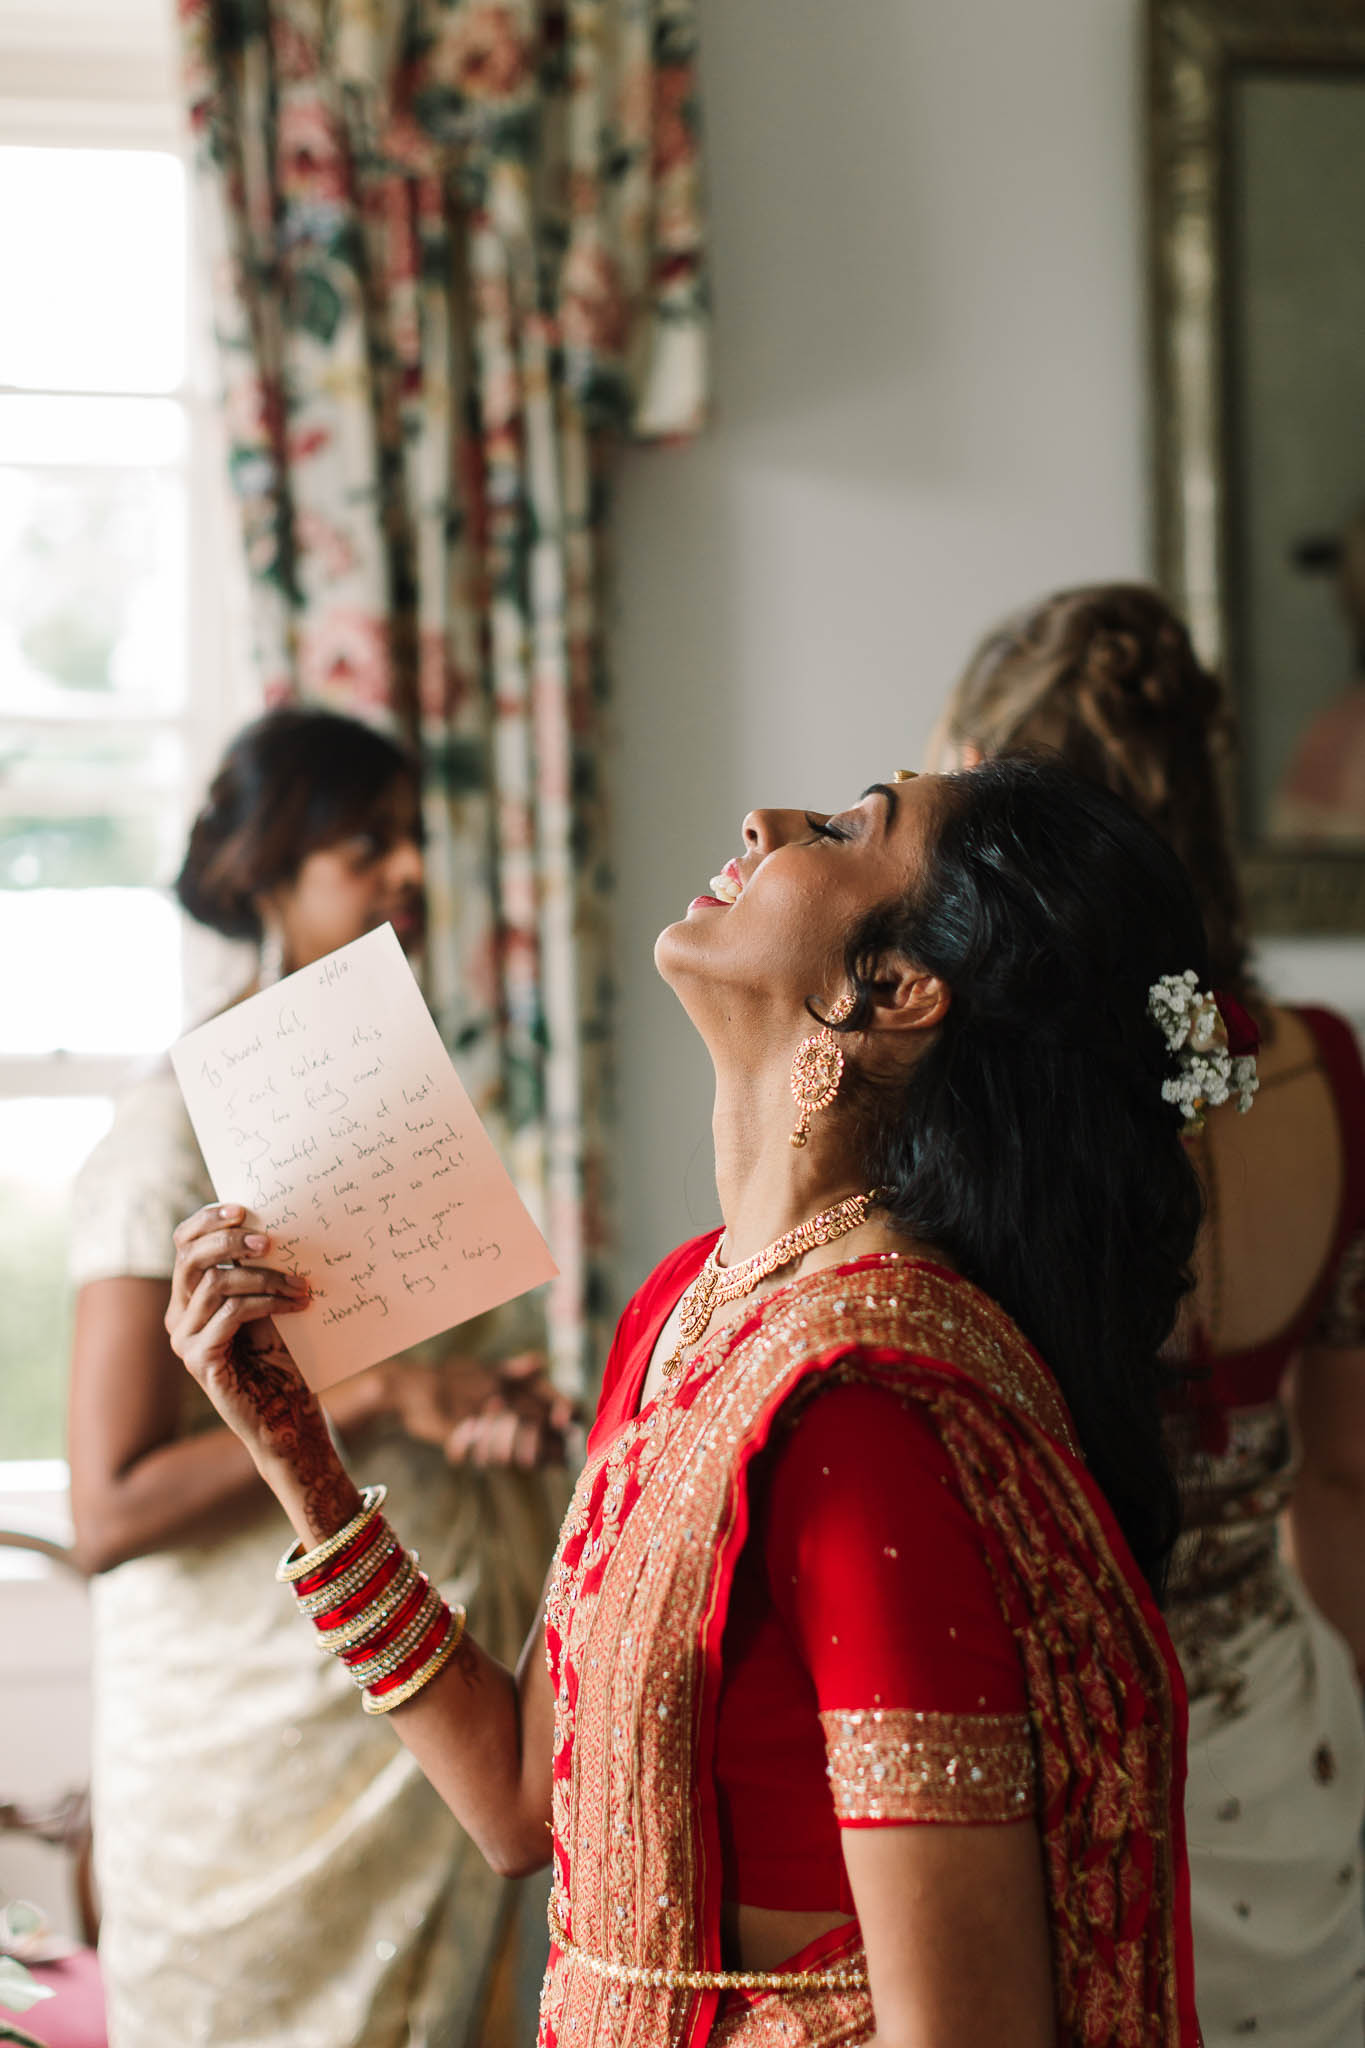 bride trying not to cry after reading message from fiancé